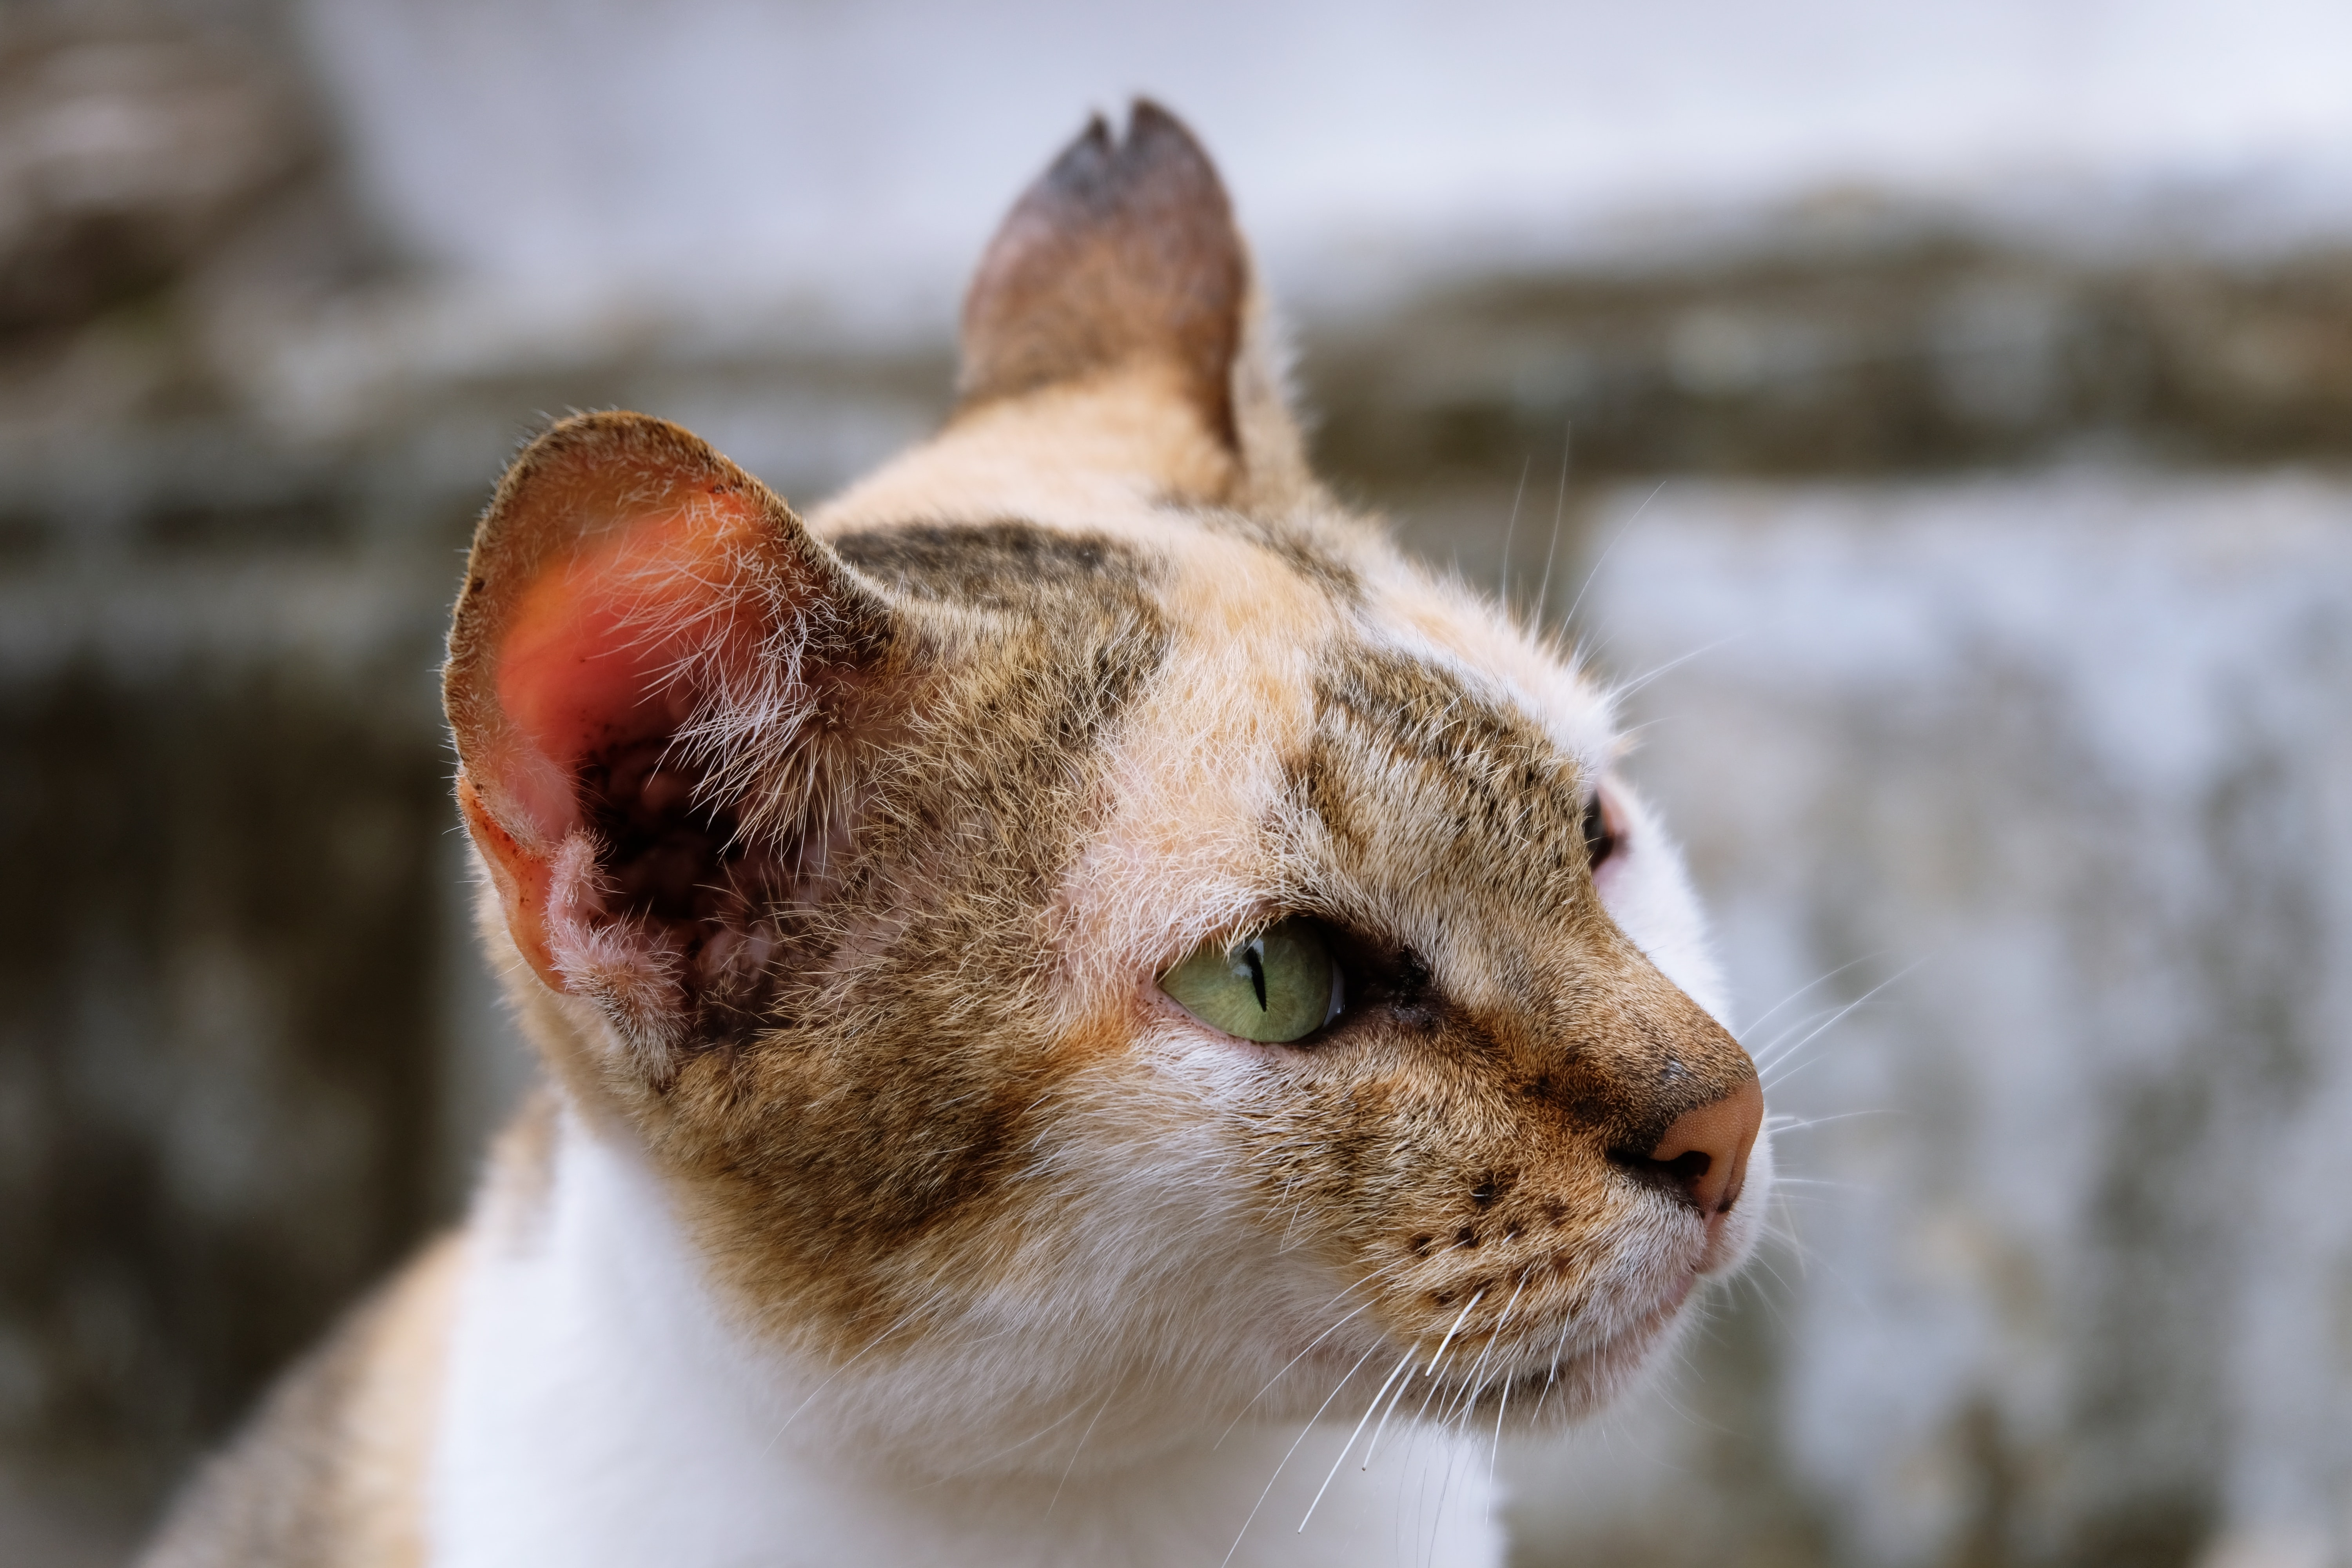 selective photo of yellow, white, and black cat taken at daytime